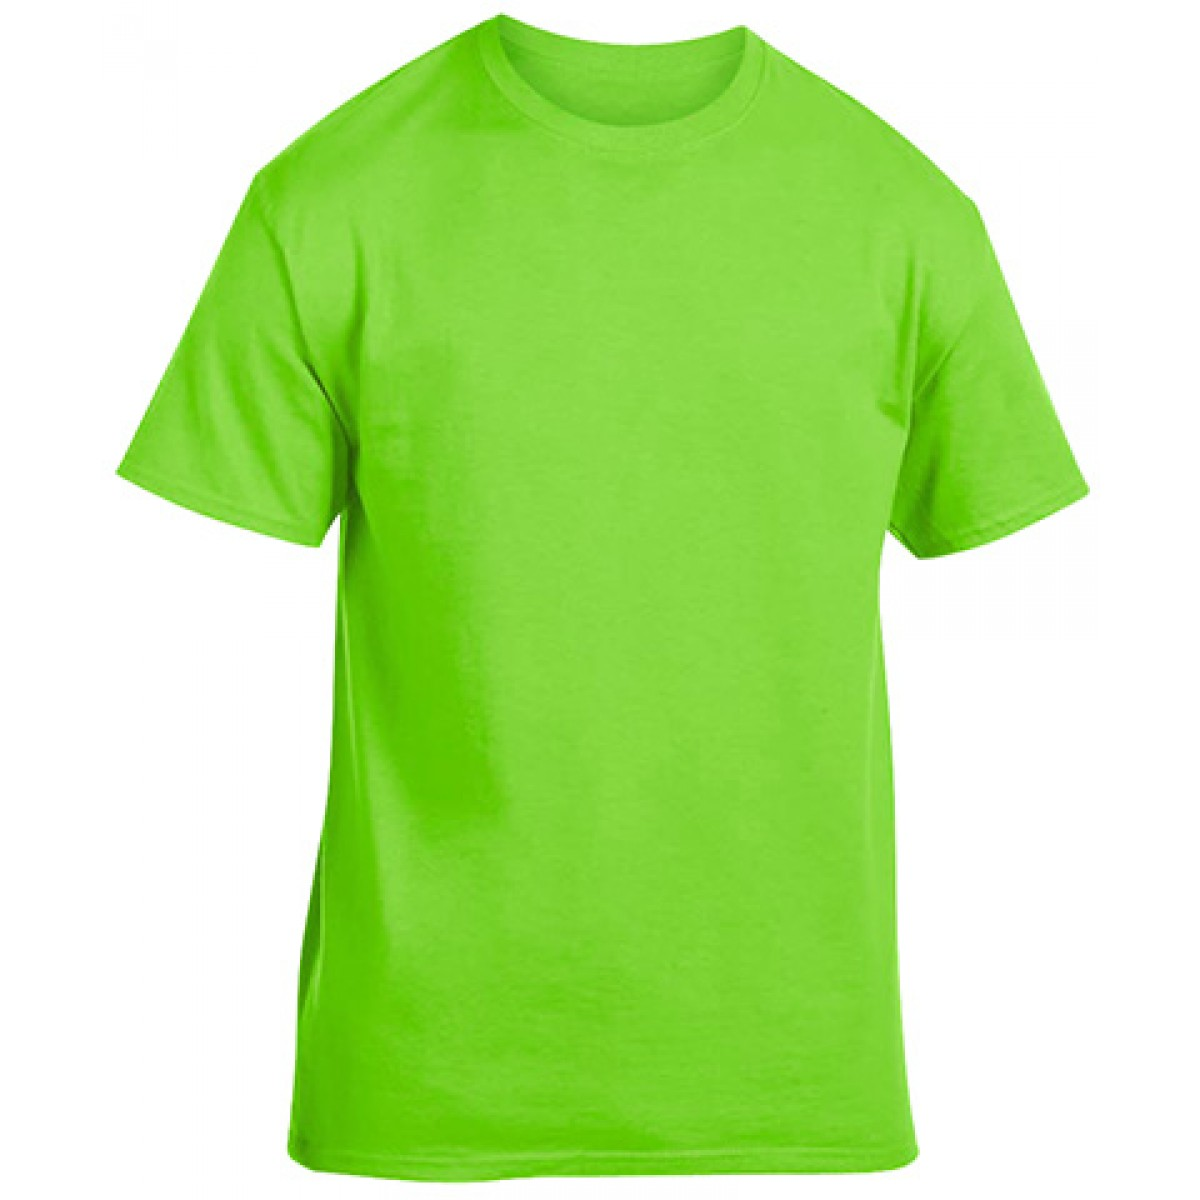 Soft 100% Cotton T-Shirt-Neon Green-L